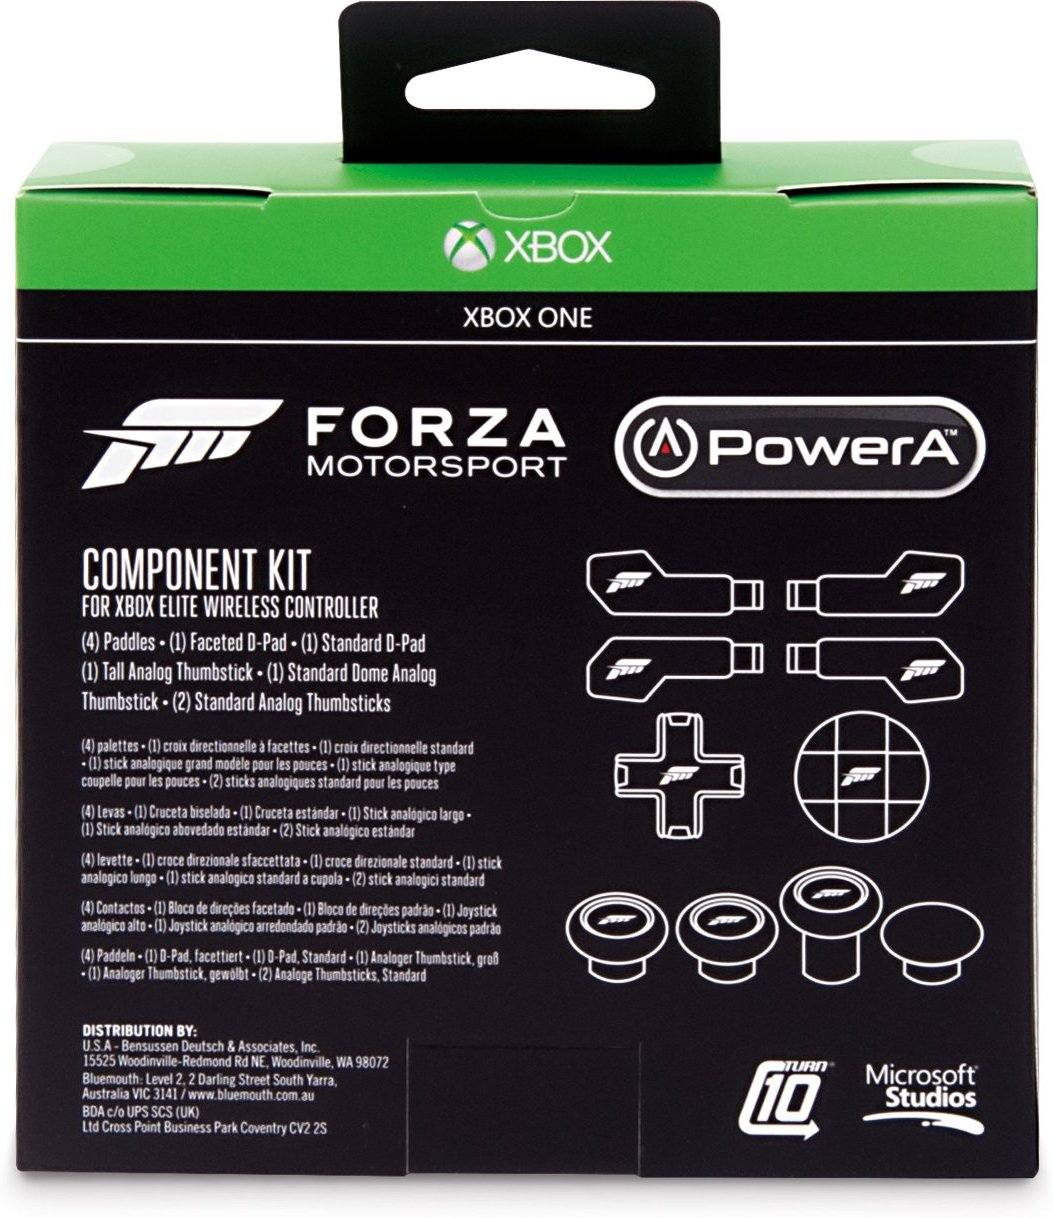 powera forza component kit for xbox one elite wireless controller